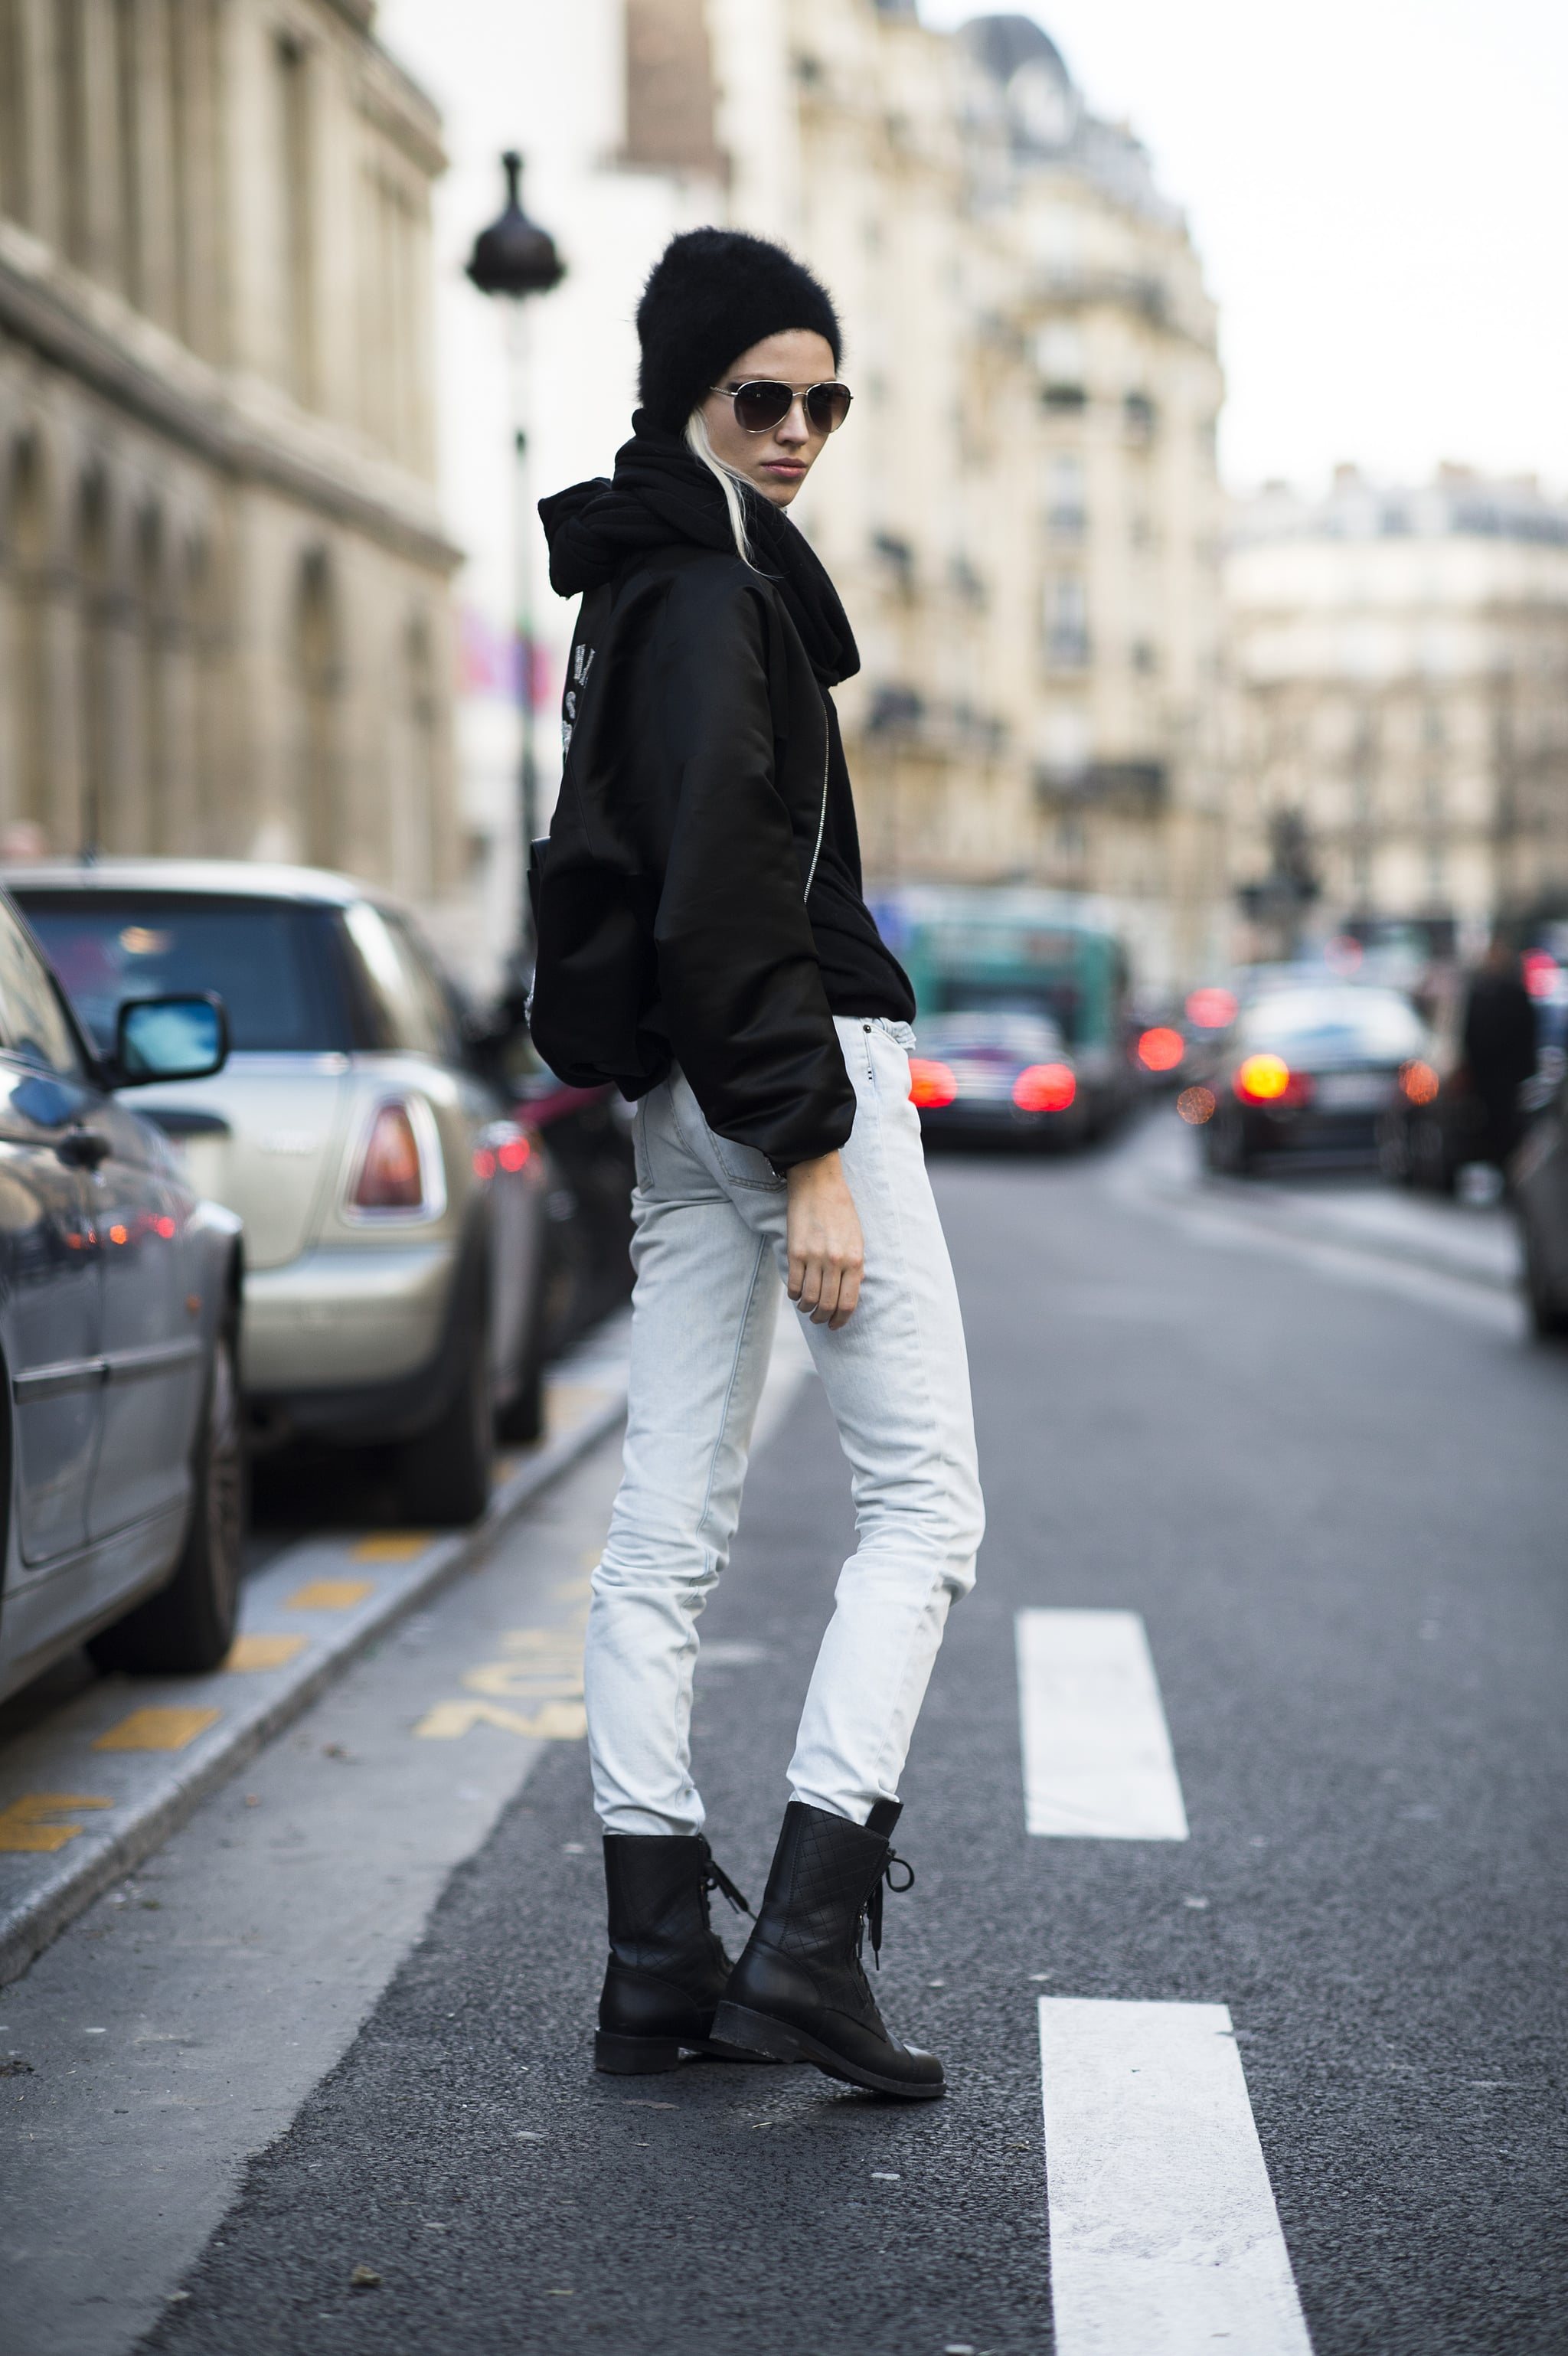 Between the shades and the combat boots, the message is clear: this is one tough girl. Source: Le 21ème | Adam Katz Sinding